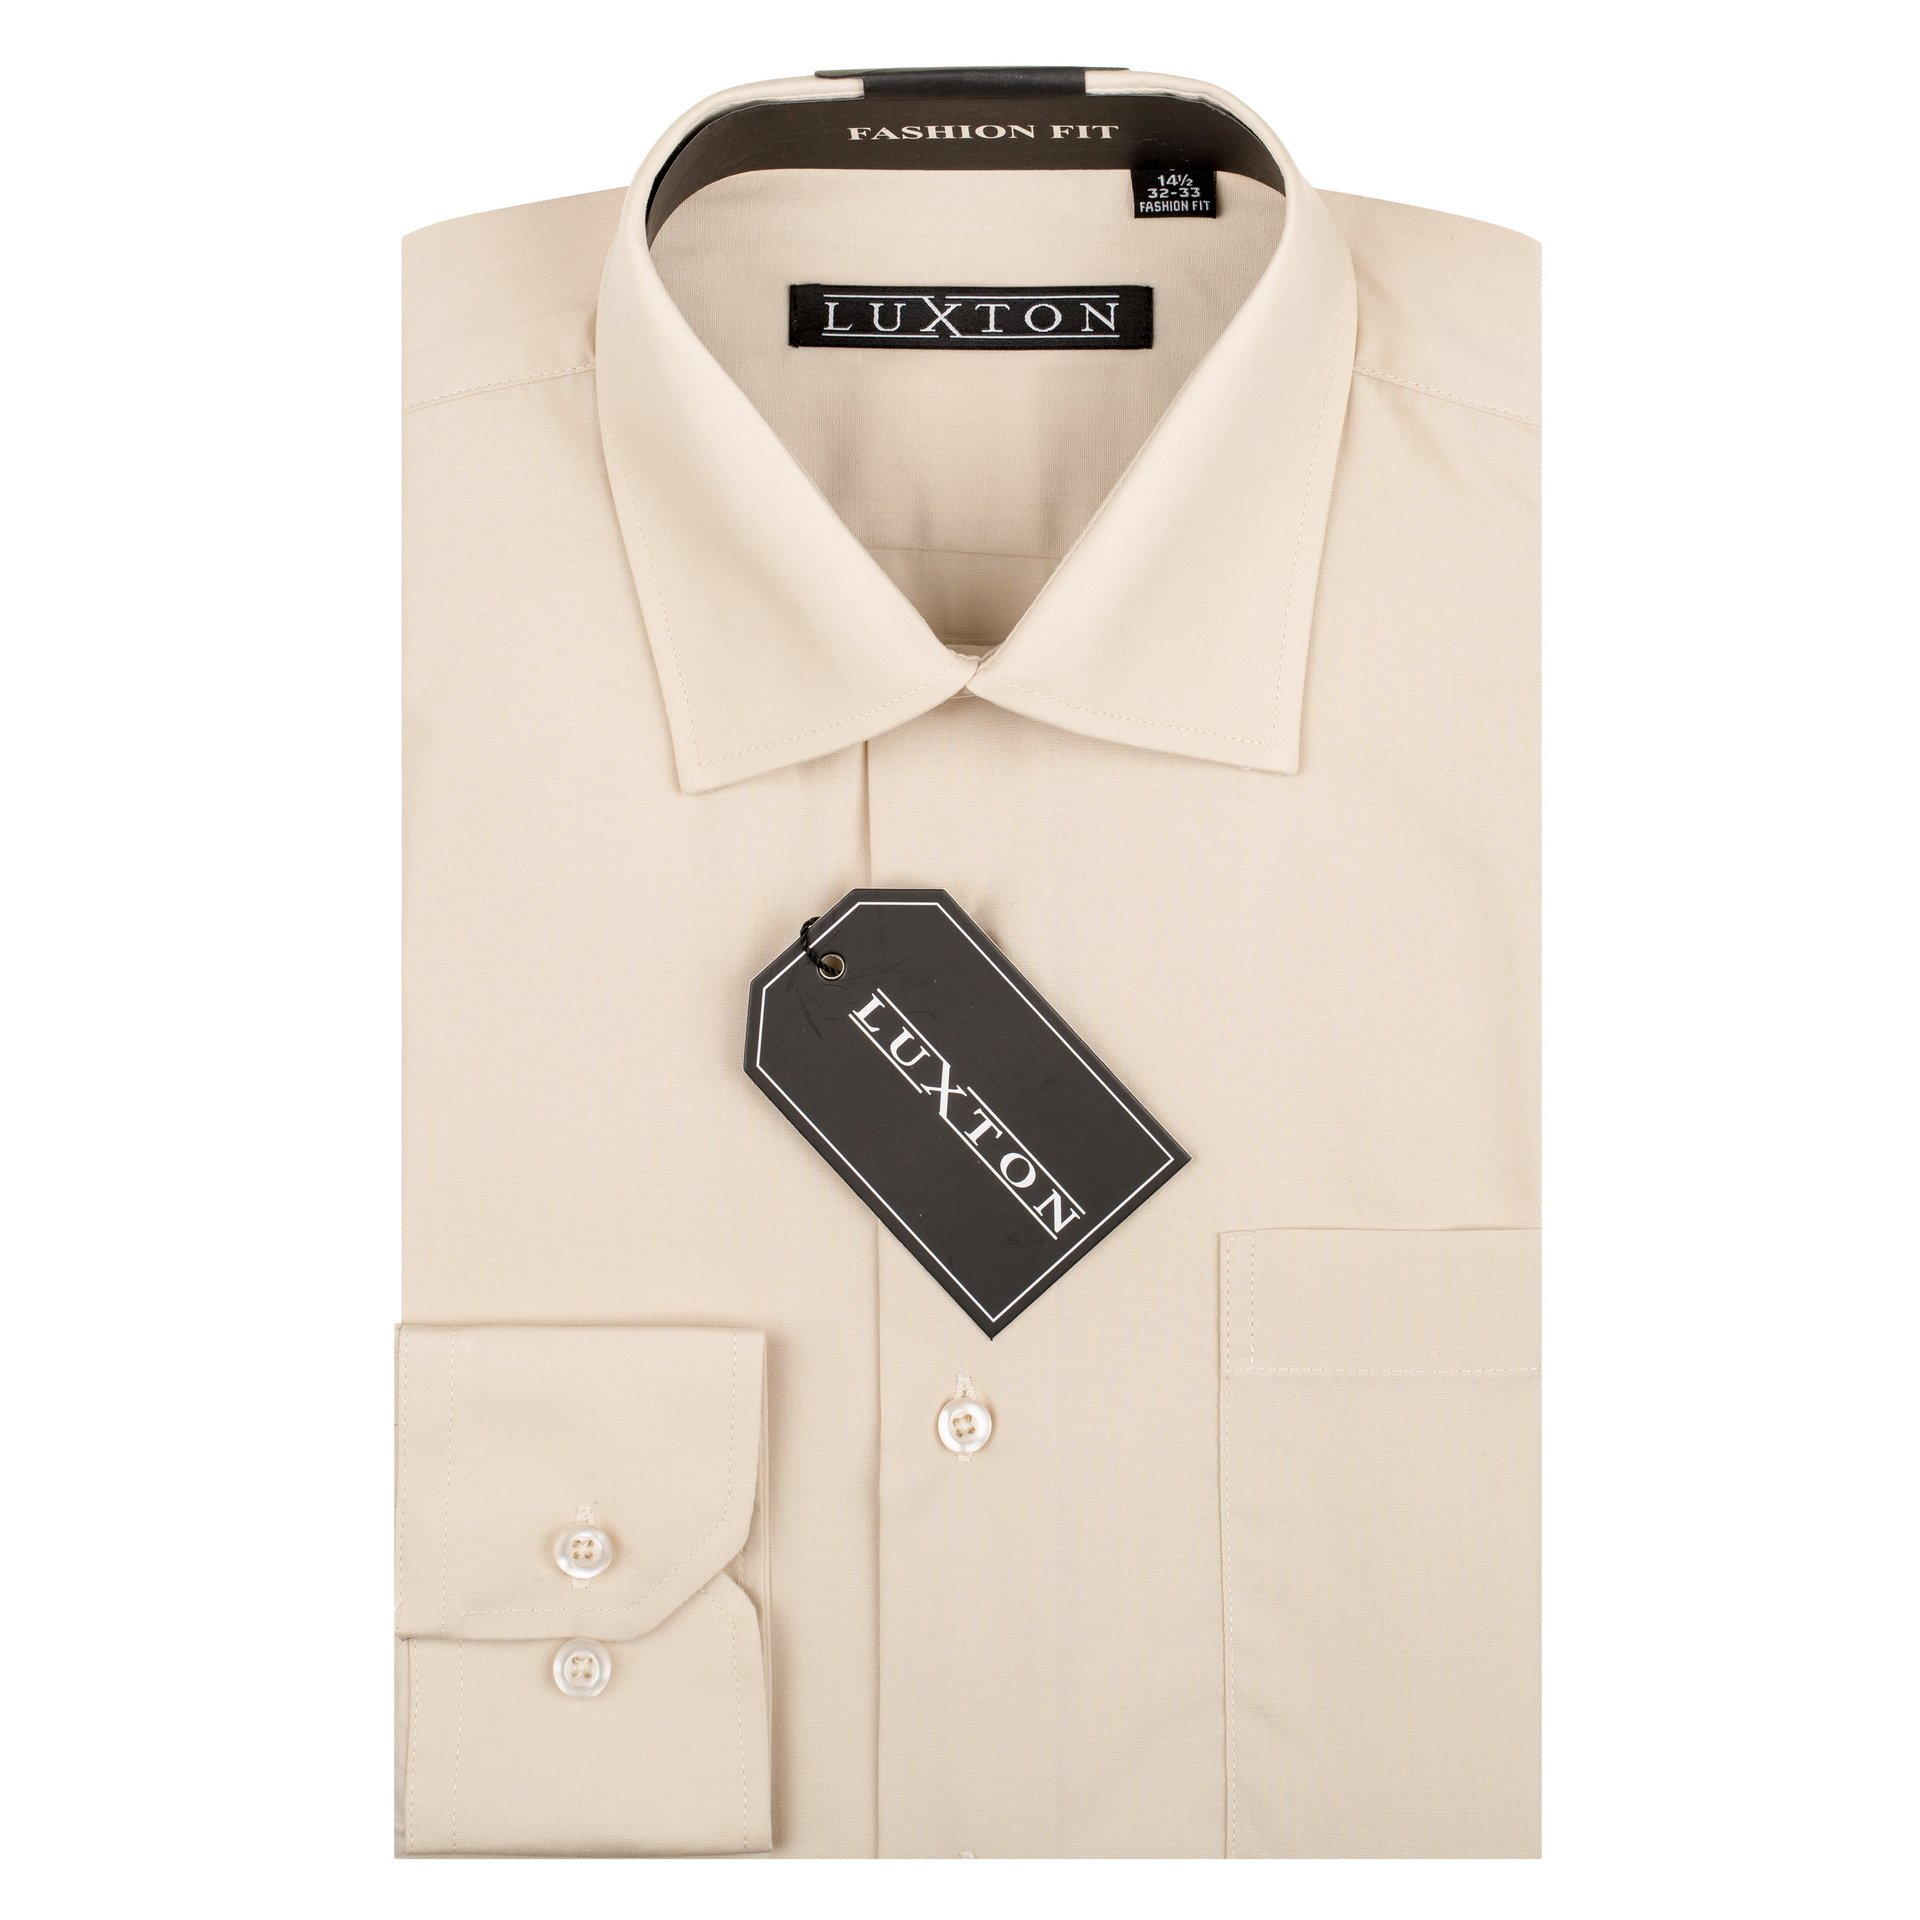 Luxton Cotton Poly Shirt Collection Regular Fit (Tan 23,Large/Neck:16-16 1/2, Sleeve:34/35)